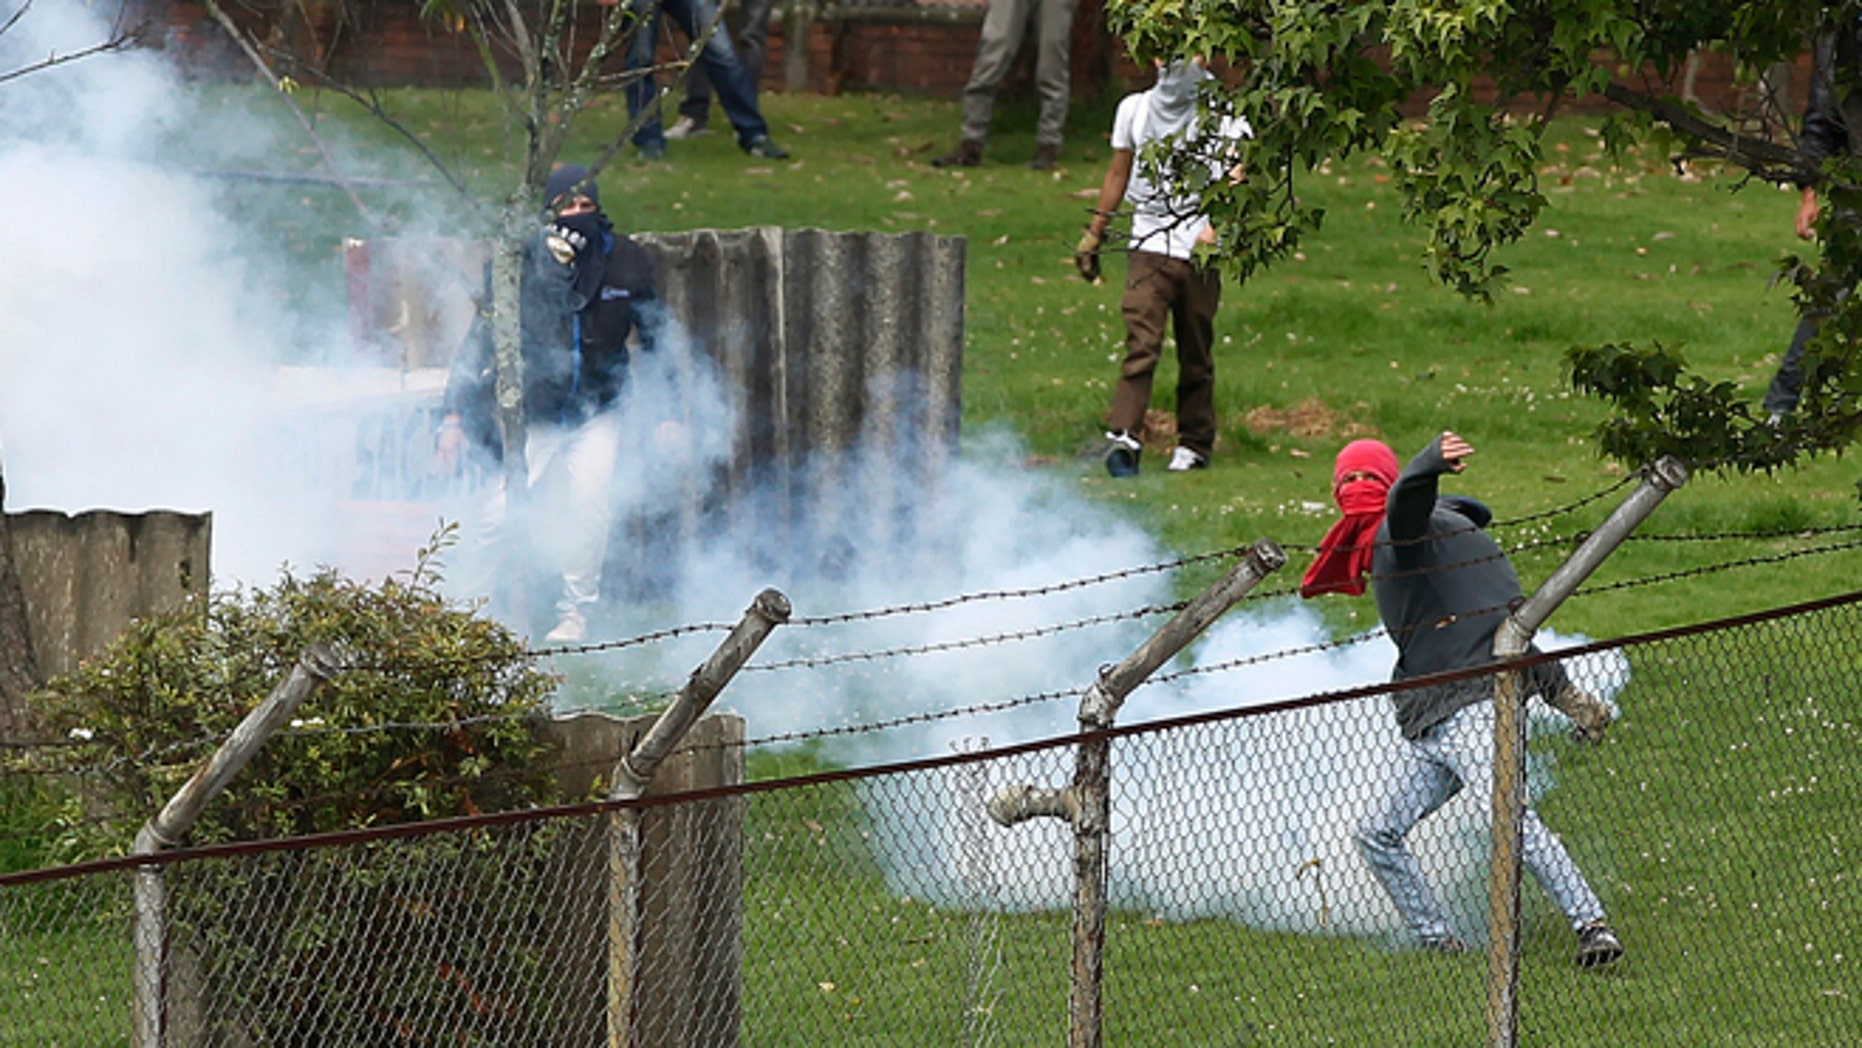 A university students motions to throw back a teargas canister at riot police during a protest in support of a national strike in Bogota, Colombia, Tuesday, Aug. 20, 2013. Truckers, coffee workers and health workers joined agricultural and mining workers in one of the largest national strikes ever faced by the Colombian government. The strikers demands include reduced gas prices and increased subsidies. (AP Photo/Fernando Vergara)